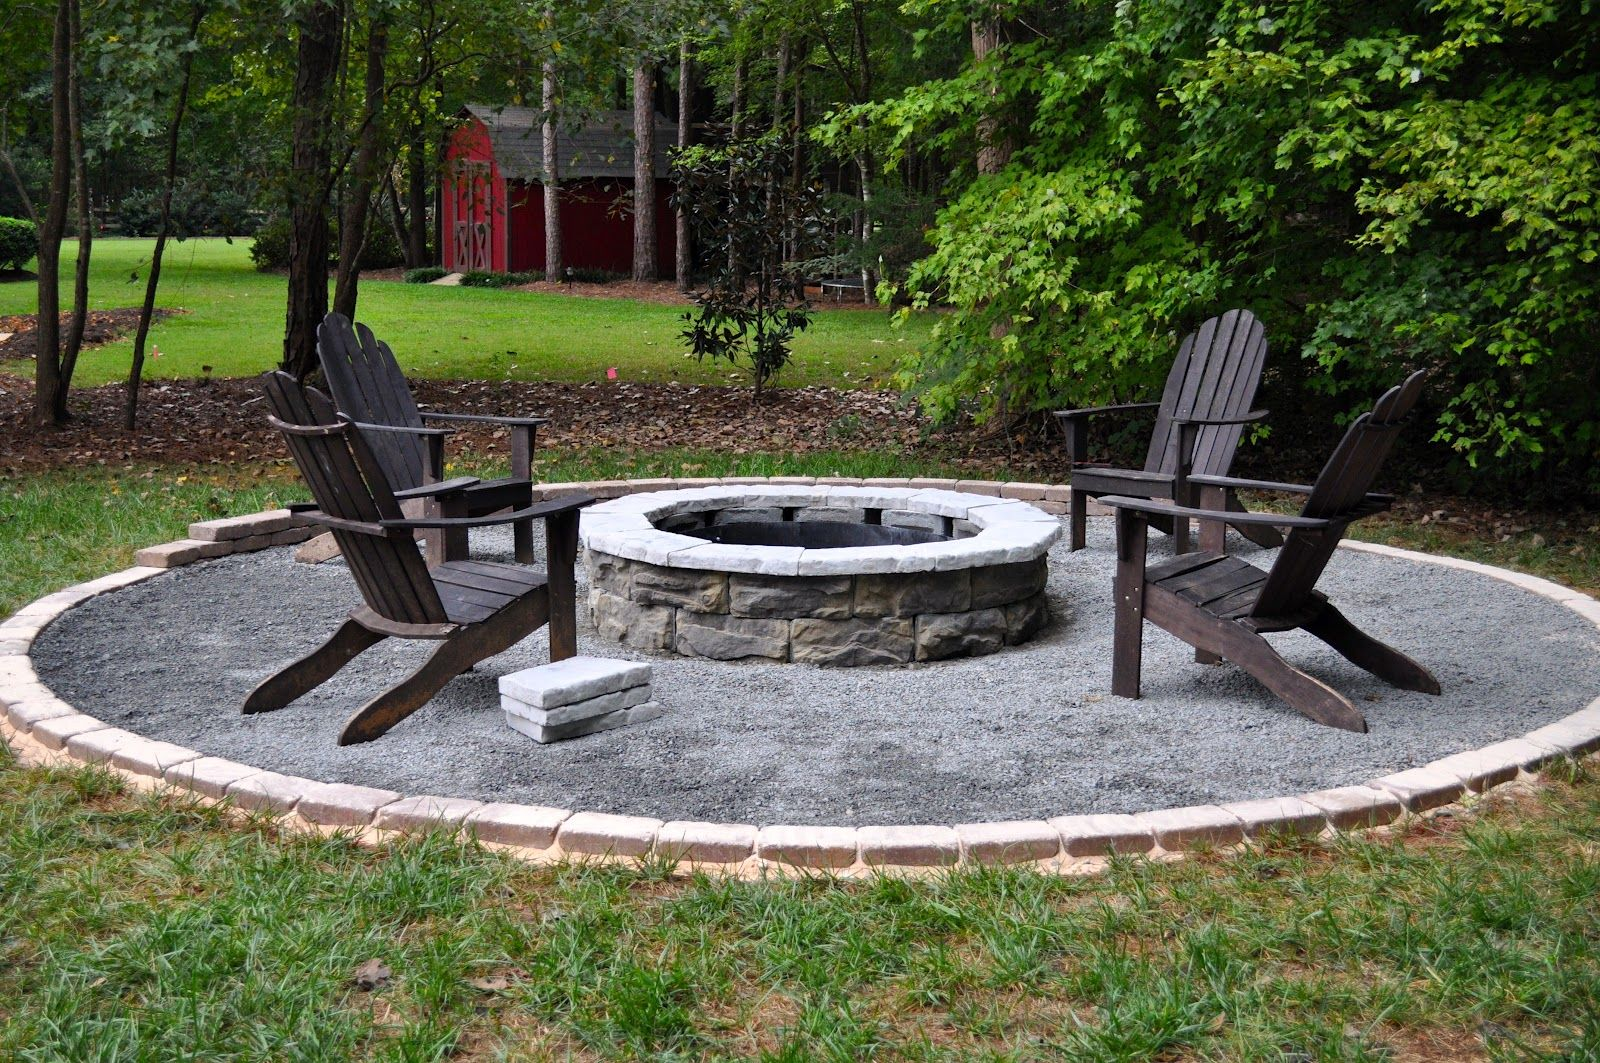 Roundup 14 diy fire pits you can make yourself backyard diy roundup 14 diy fire pits you can make yourself solutioingenieria Image collections